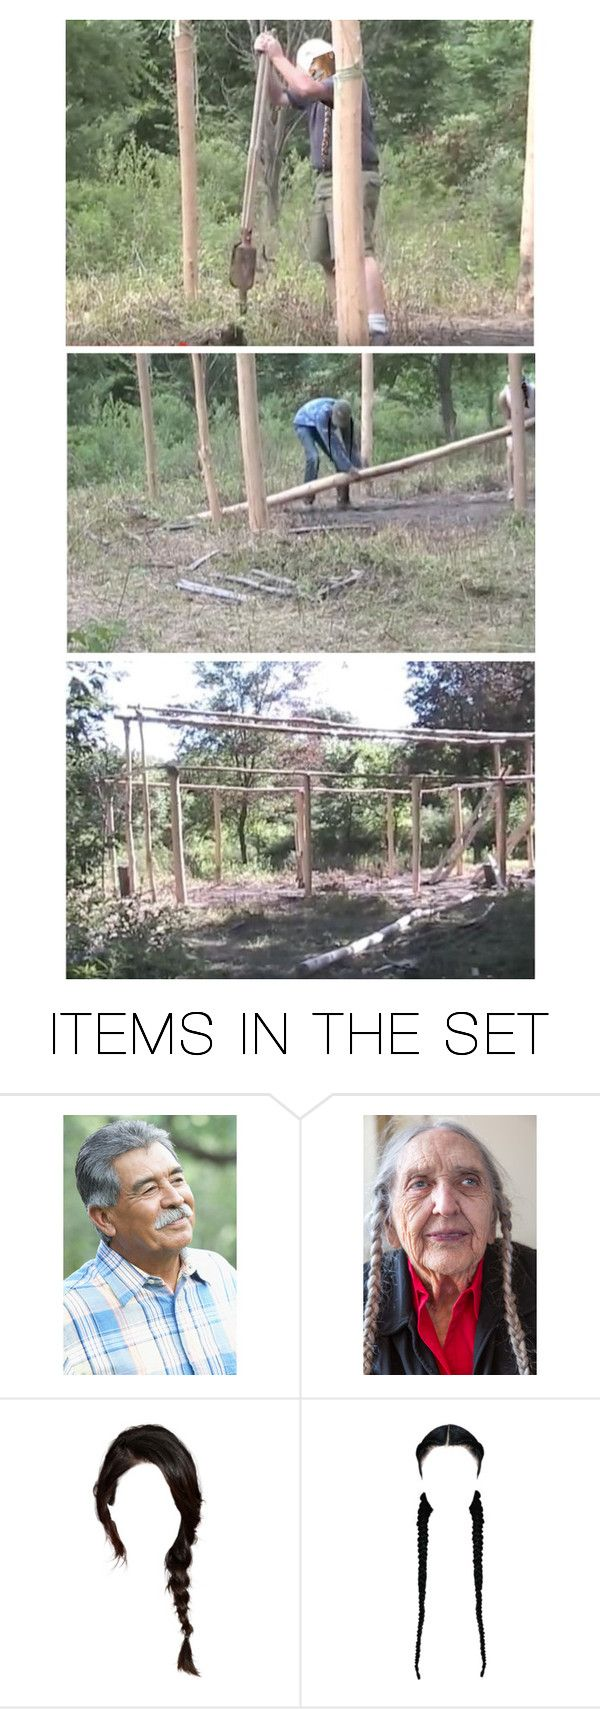 """Maria Was at the Trailer With Pauline Making Frybread for the Crew…the Men Had 19 Post Holes to Dig & 19 Posts to Choose, Strip, & Seat in the Holes…Things Went Fast With So Many Hands & They Had Time to Tie on the First Horizontal Supports as Well"" by maggie-johnston ❤ liked on Polyvore featuring art"